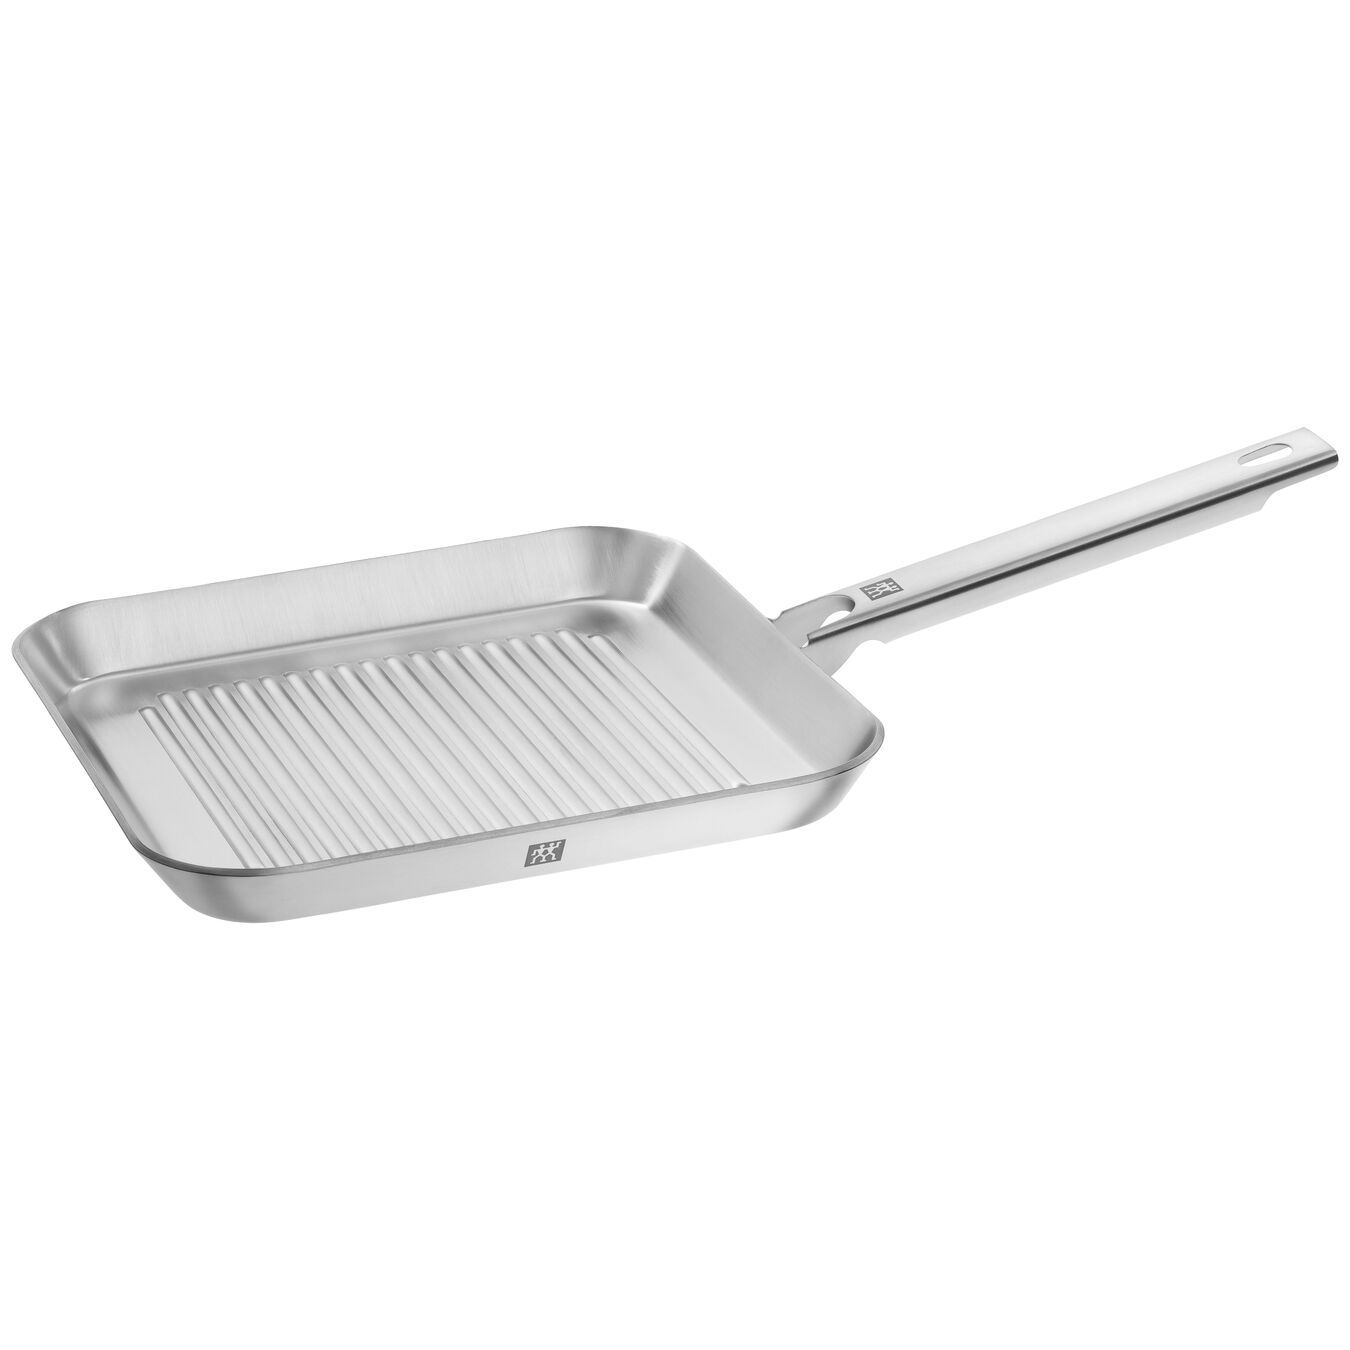 24 cm / 9.5 inch 18/10 Stainless Steel square Grill pan, silver,,large 1